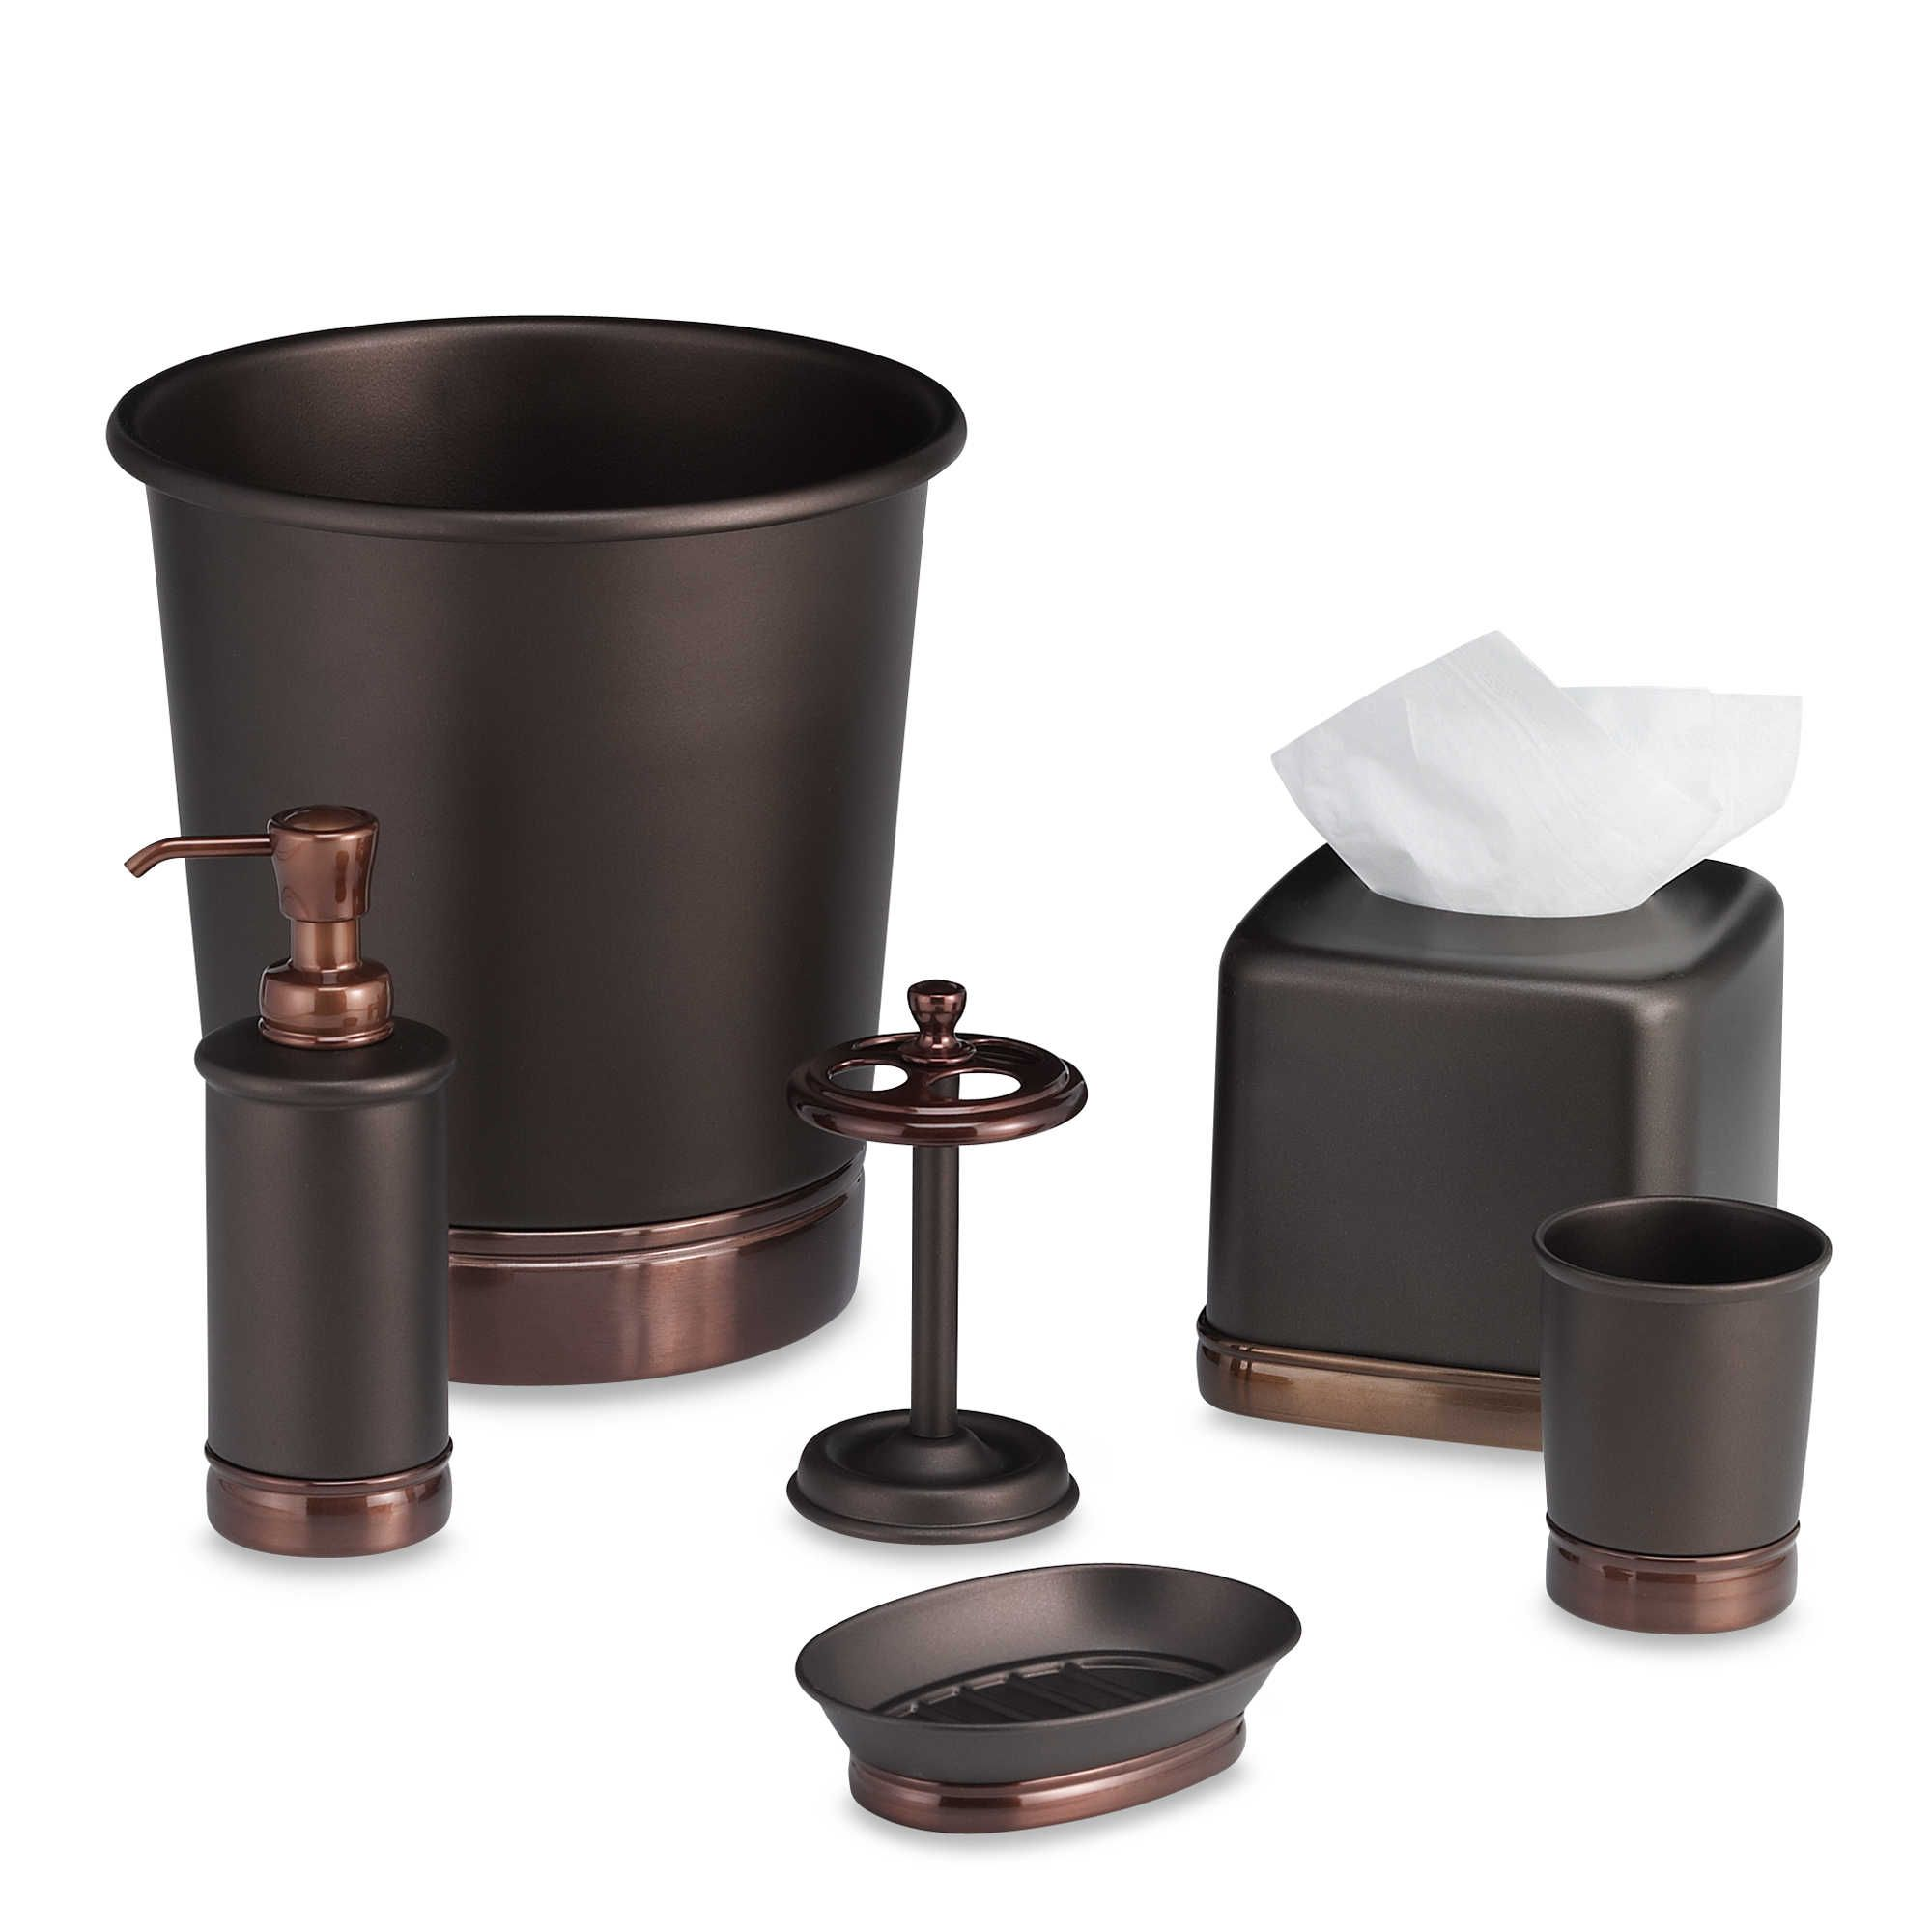 Idesign York Metal Wastebasket In Oil Rubbed Bronze Bronze